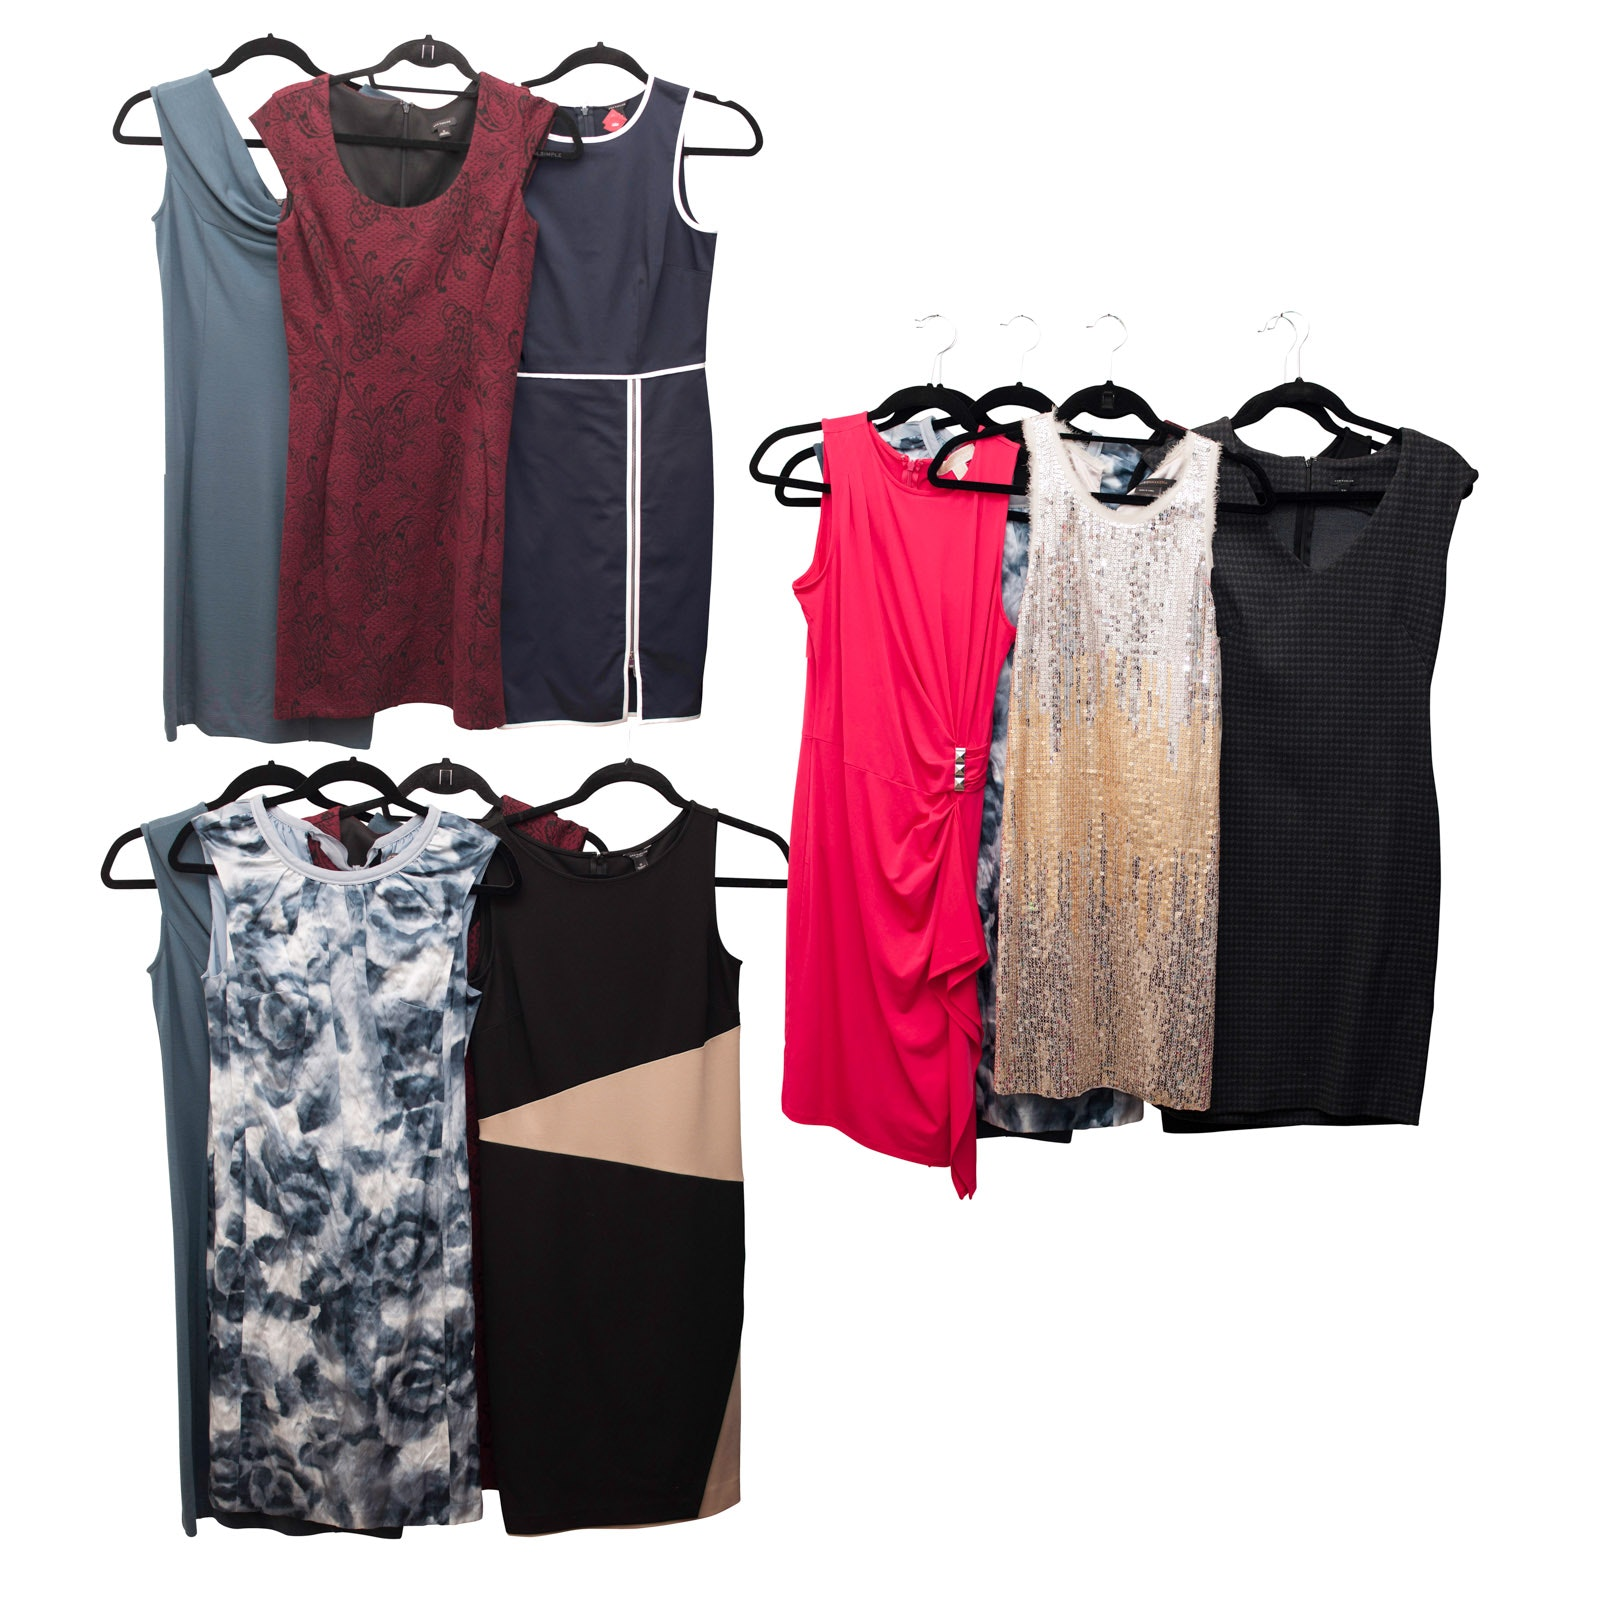 Women's Dresses including Ann Taylor, BCBG Max Azria and MICHAEL Michael Kors